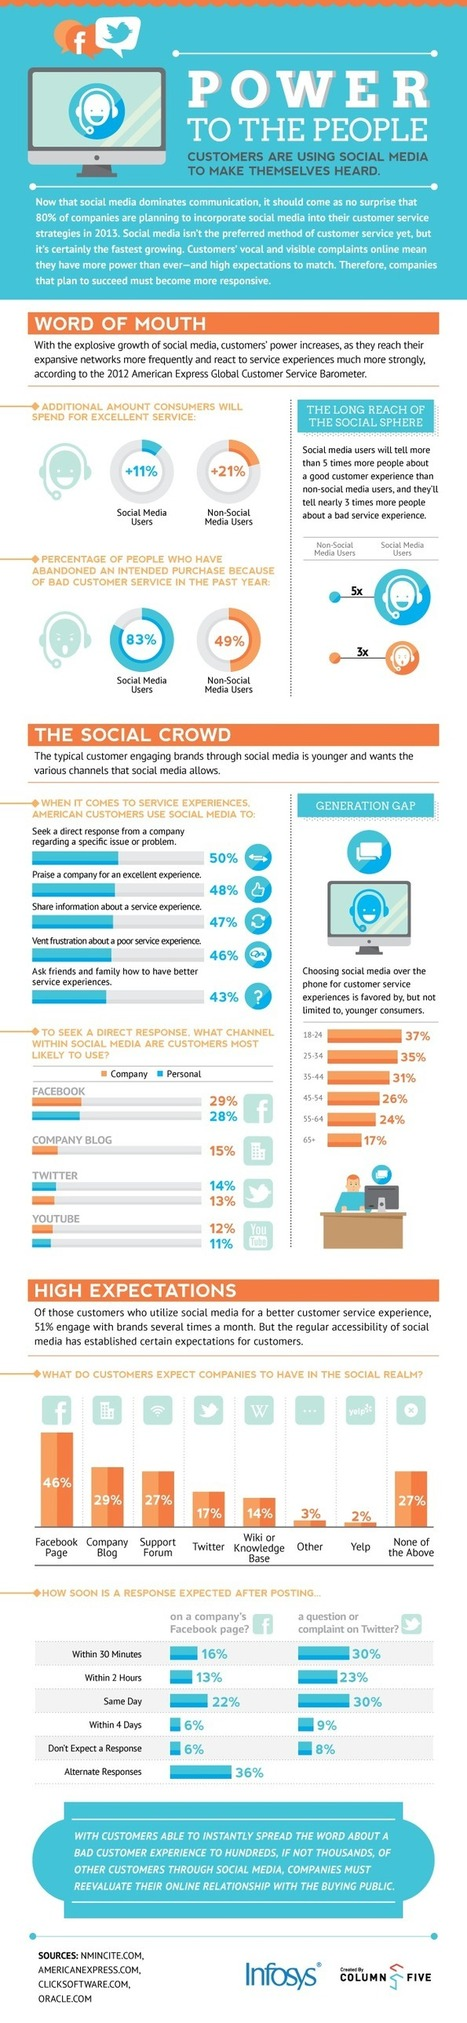 Social Media Brings Power To The People [INFOGRAPHIC] - AllTwitter | Better know and better use Social Media today (facebook, twitter...) | Scoop.it